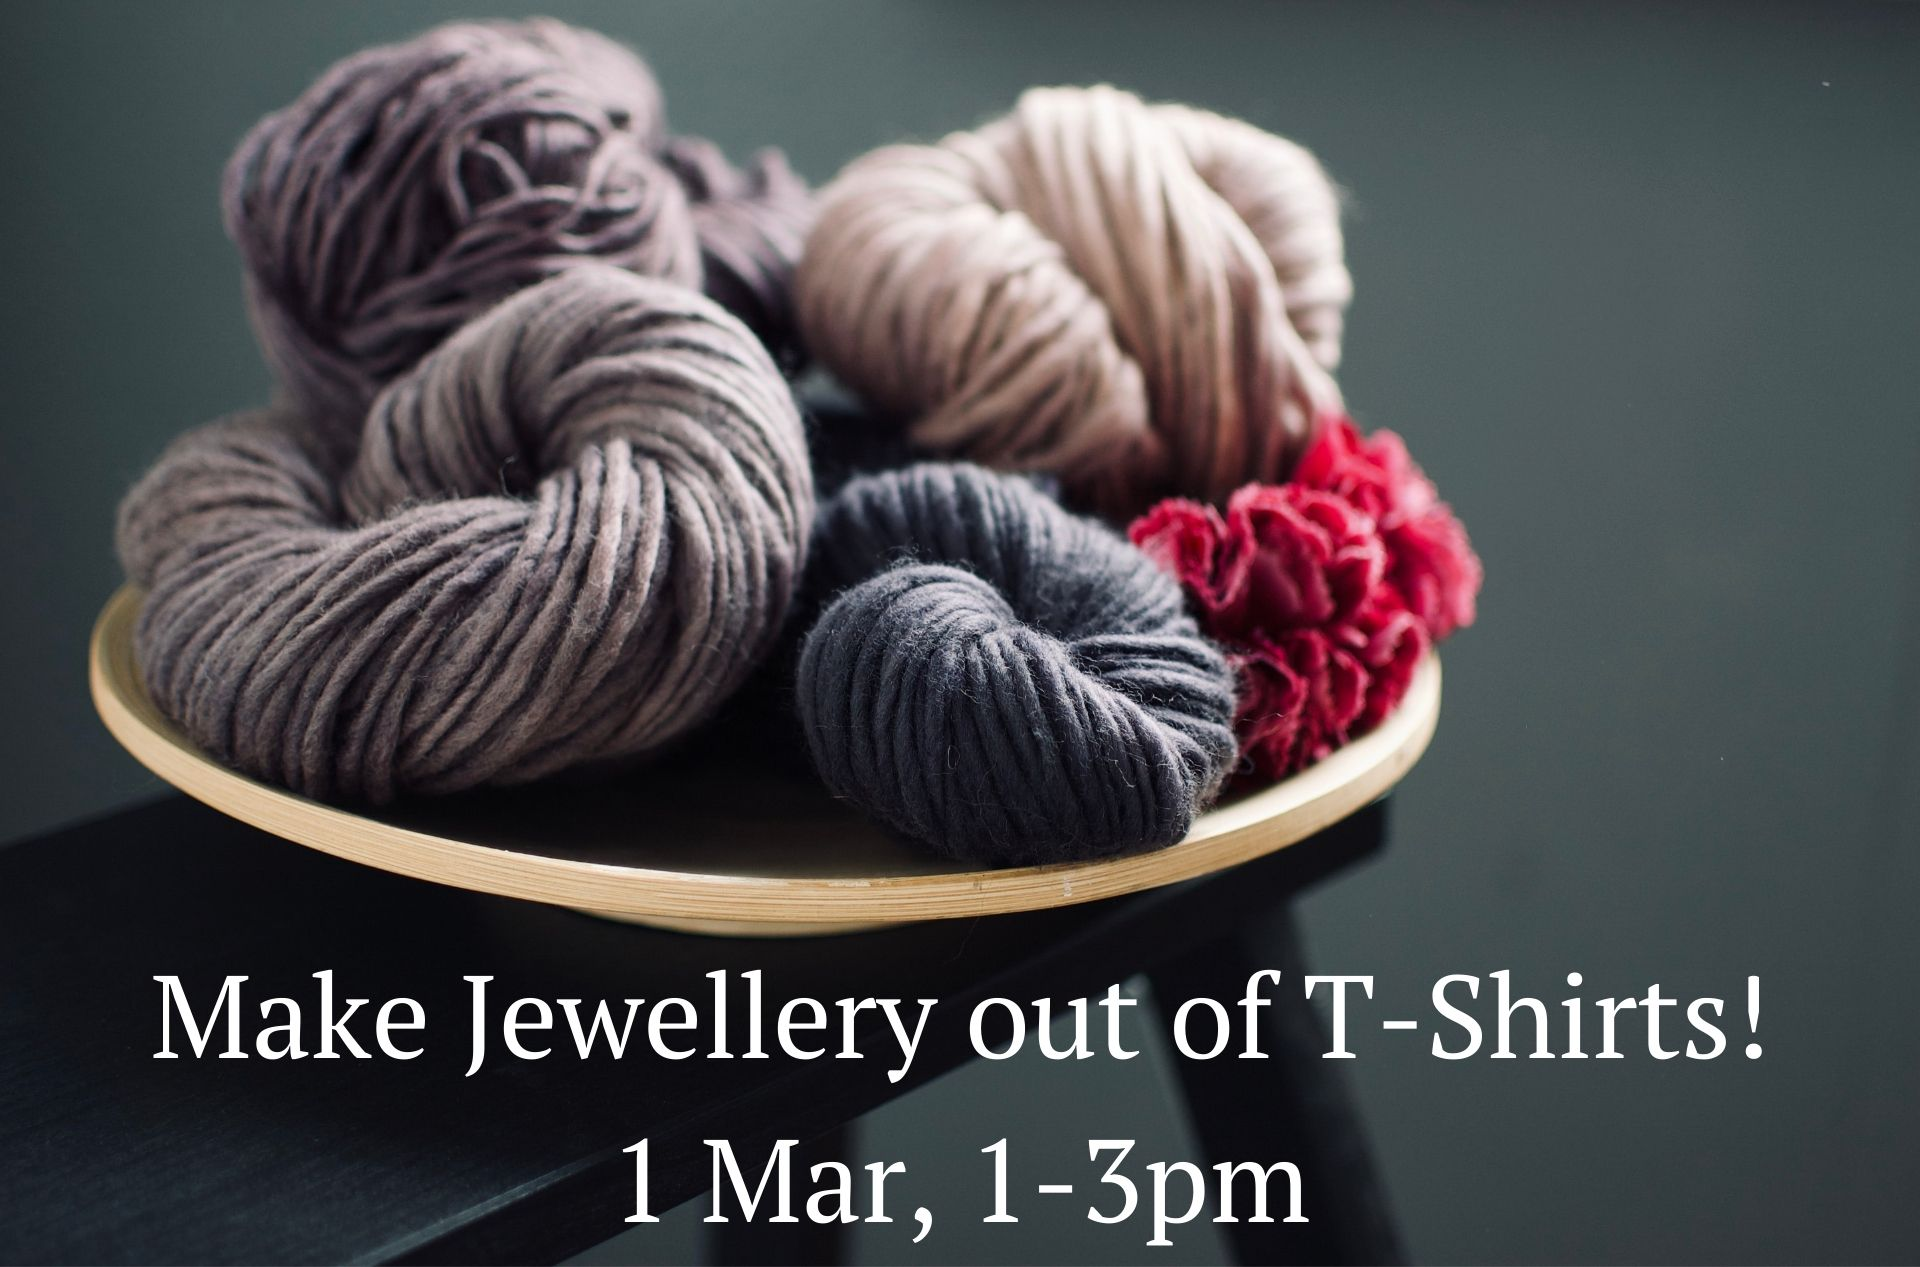 Make Jewelery out of T-Shirts! 1 Mar, 1-3pm-2